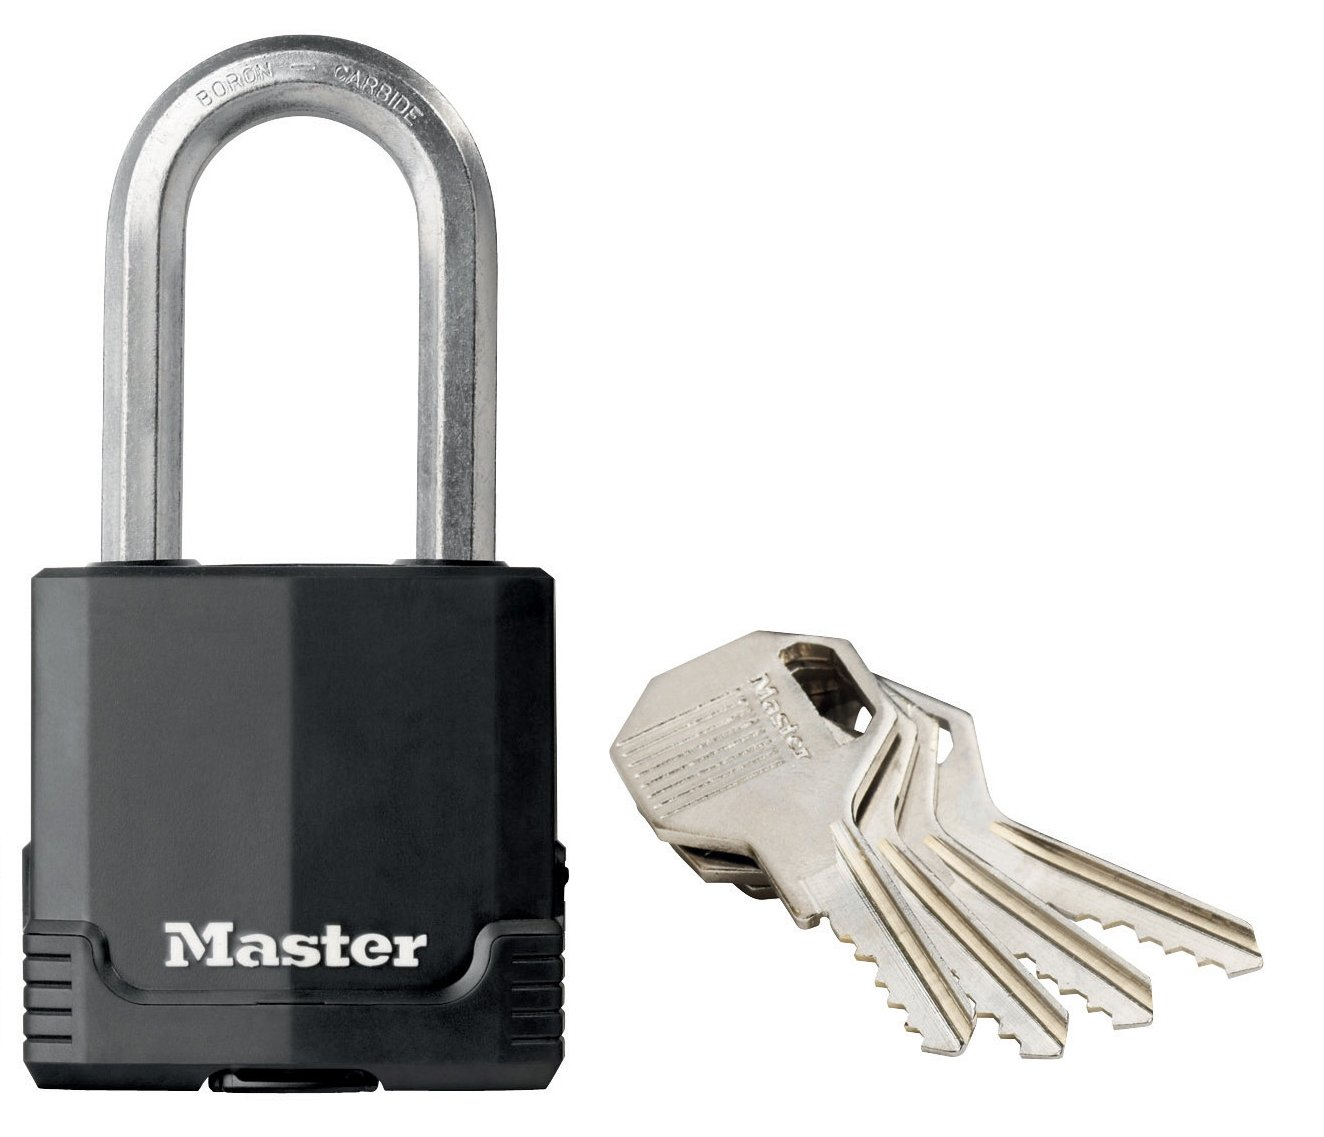 Master Lock Padlock, Excell Covered Laminated Steel Padlock, High Security Lock, Keyed Lock, Best Used for Storage Units, Sheds, Garages, Fences and More Masterlock M115EURDLF